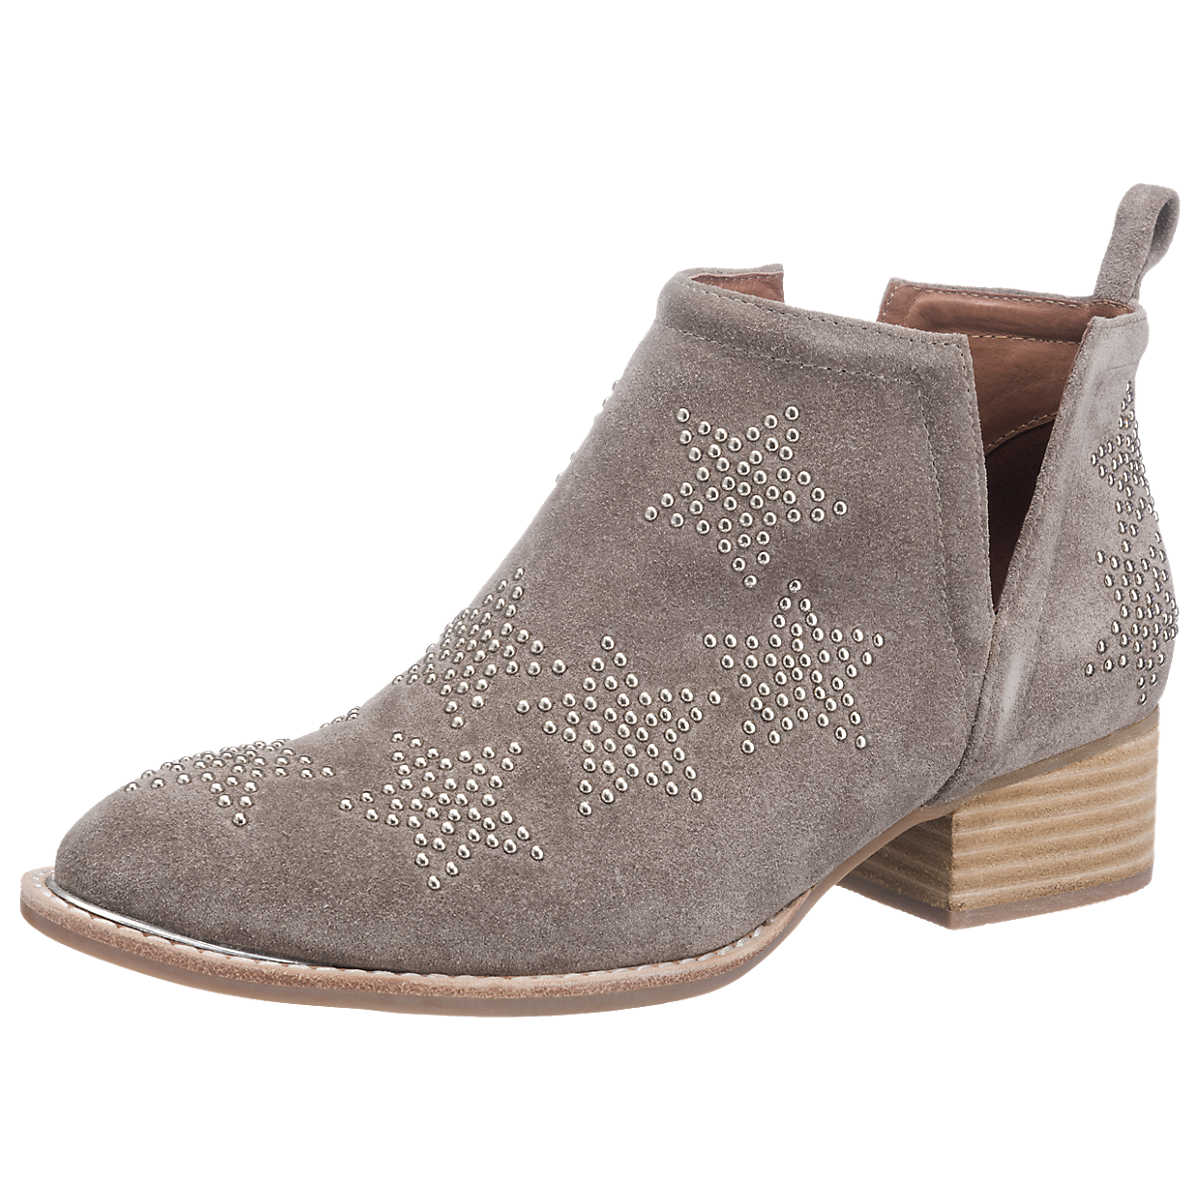 Jeffrey Campbell Starman Stiefeletten taupe - Jeffrey Campbell - Stiefeletten - Schuhe - mirapodo.de